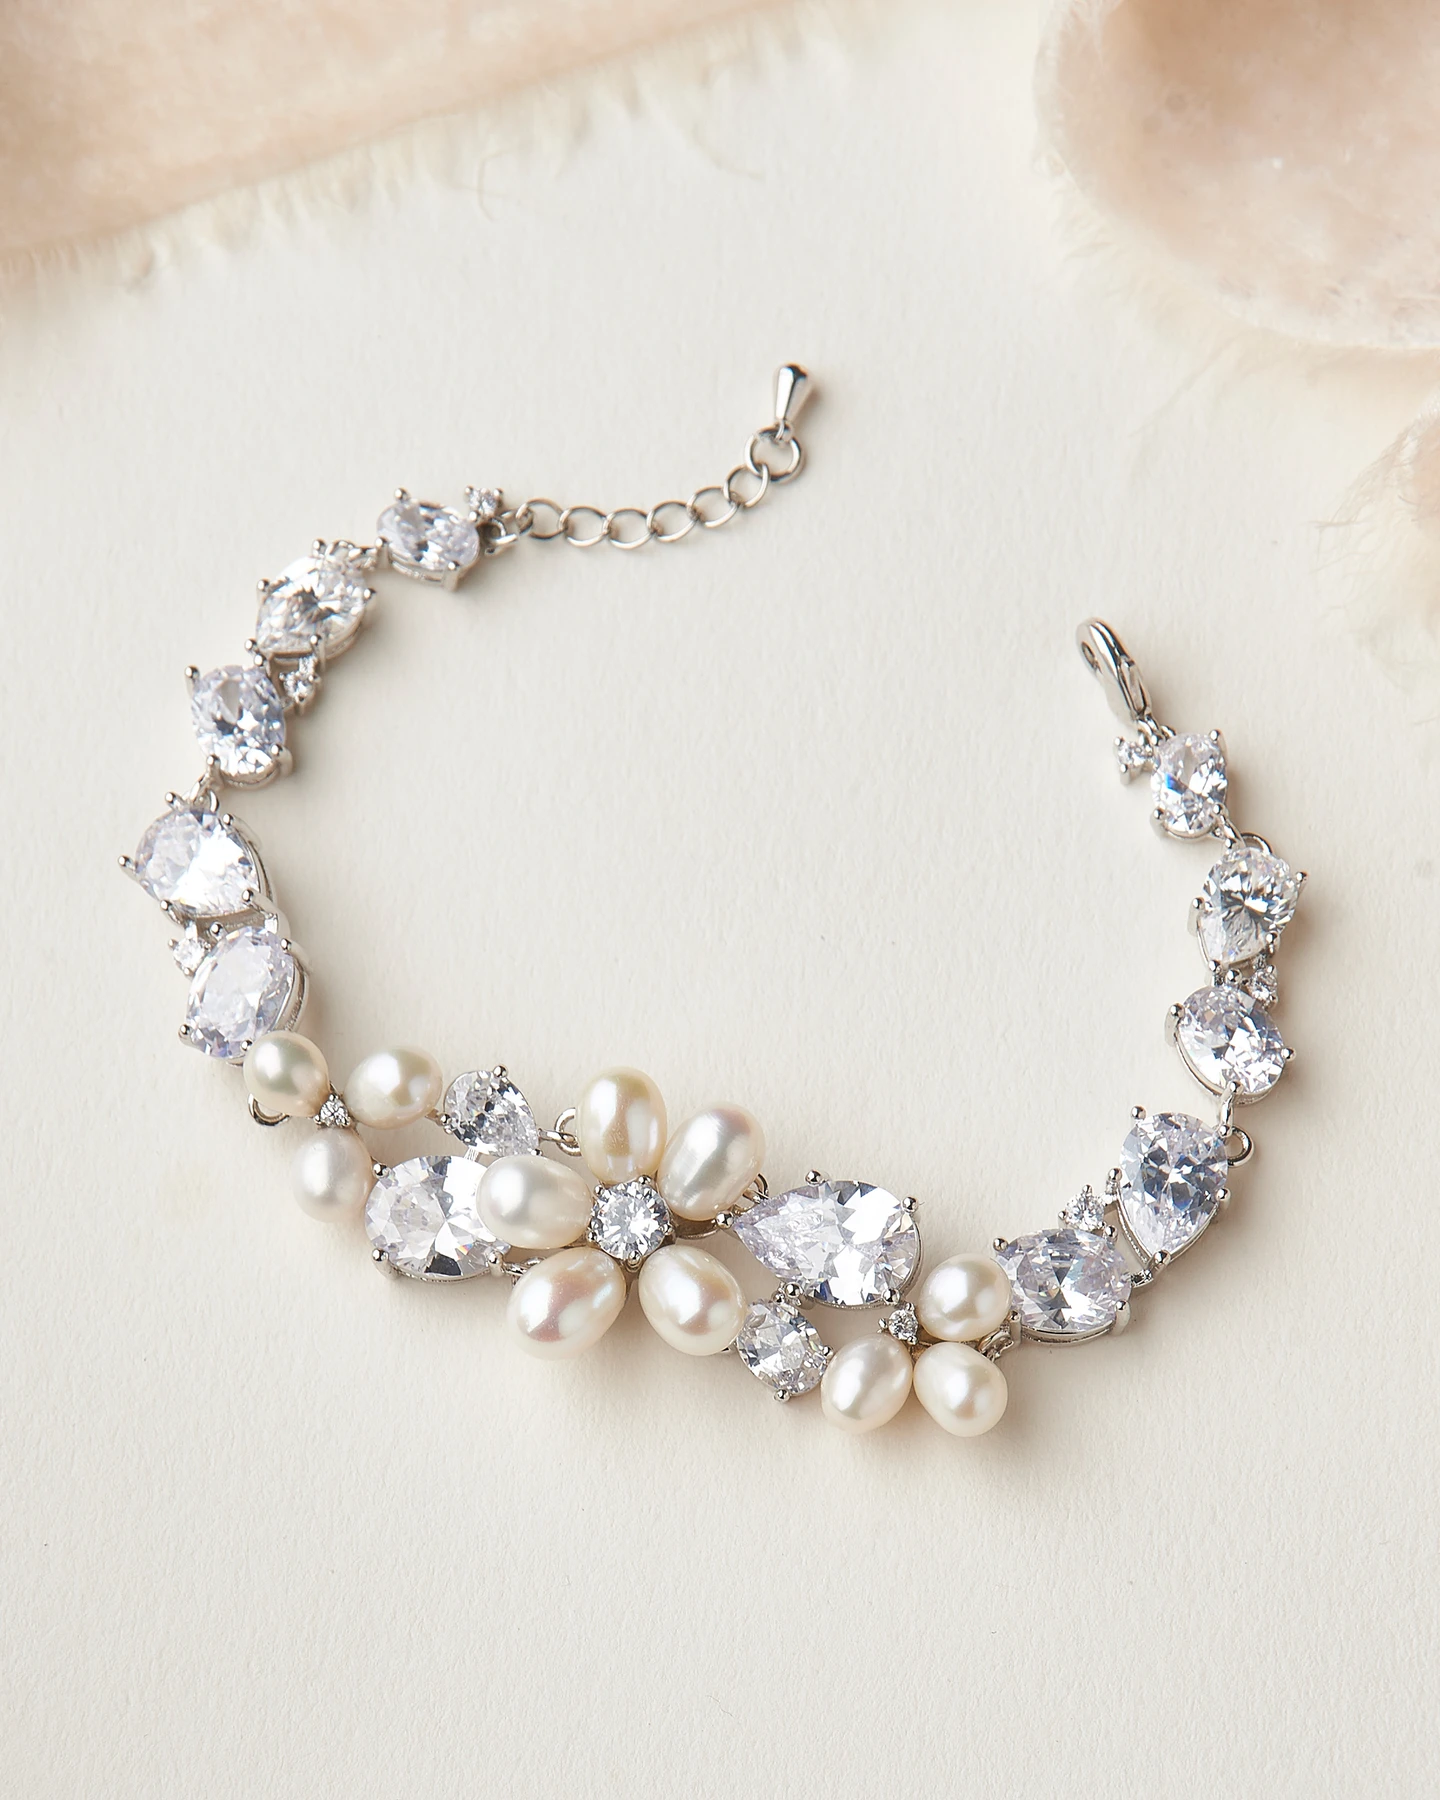 Bling wedding accessories Floral, Feminine & Showstopping Sparkle Bridal Pearl & CZ Bracelet